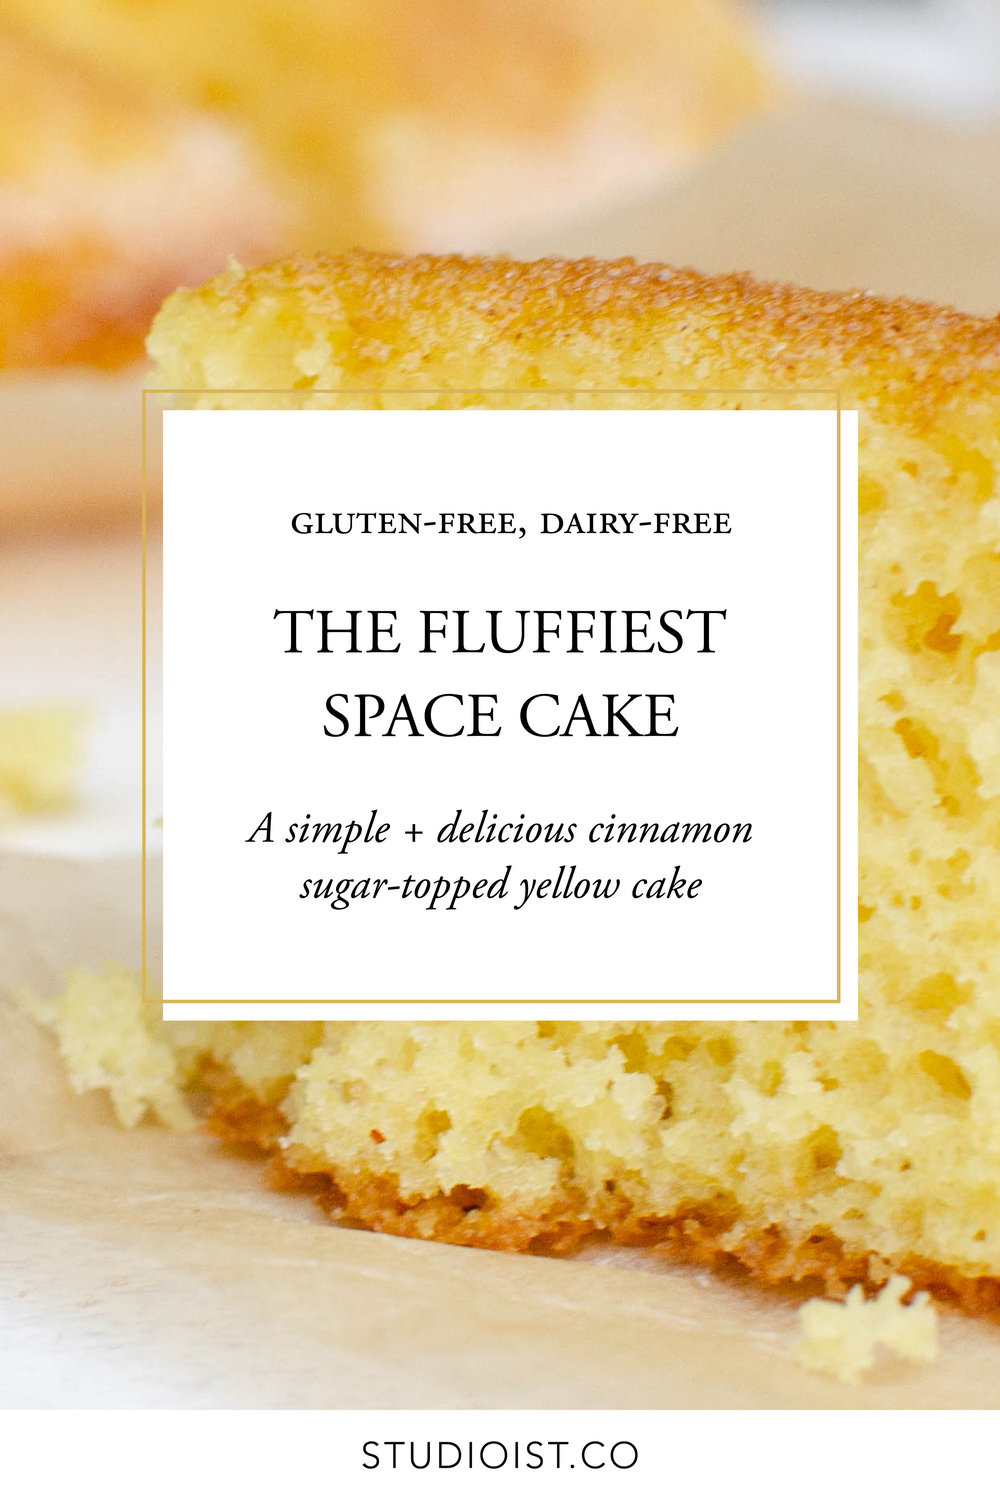 Studioist_Pinterest Design_Space Cake.jpg